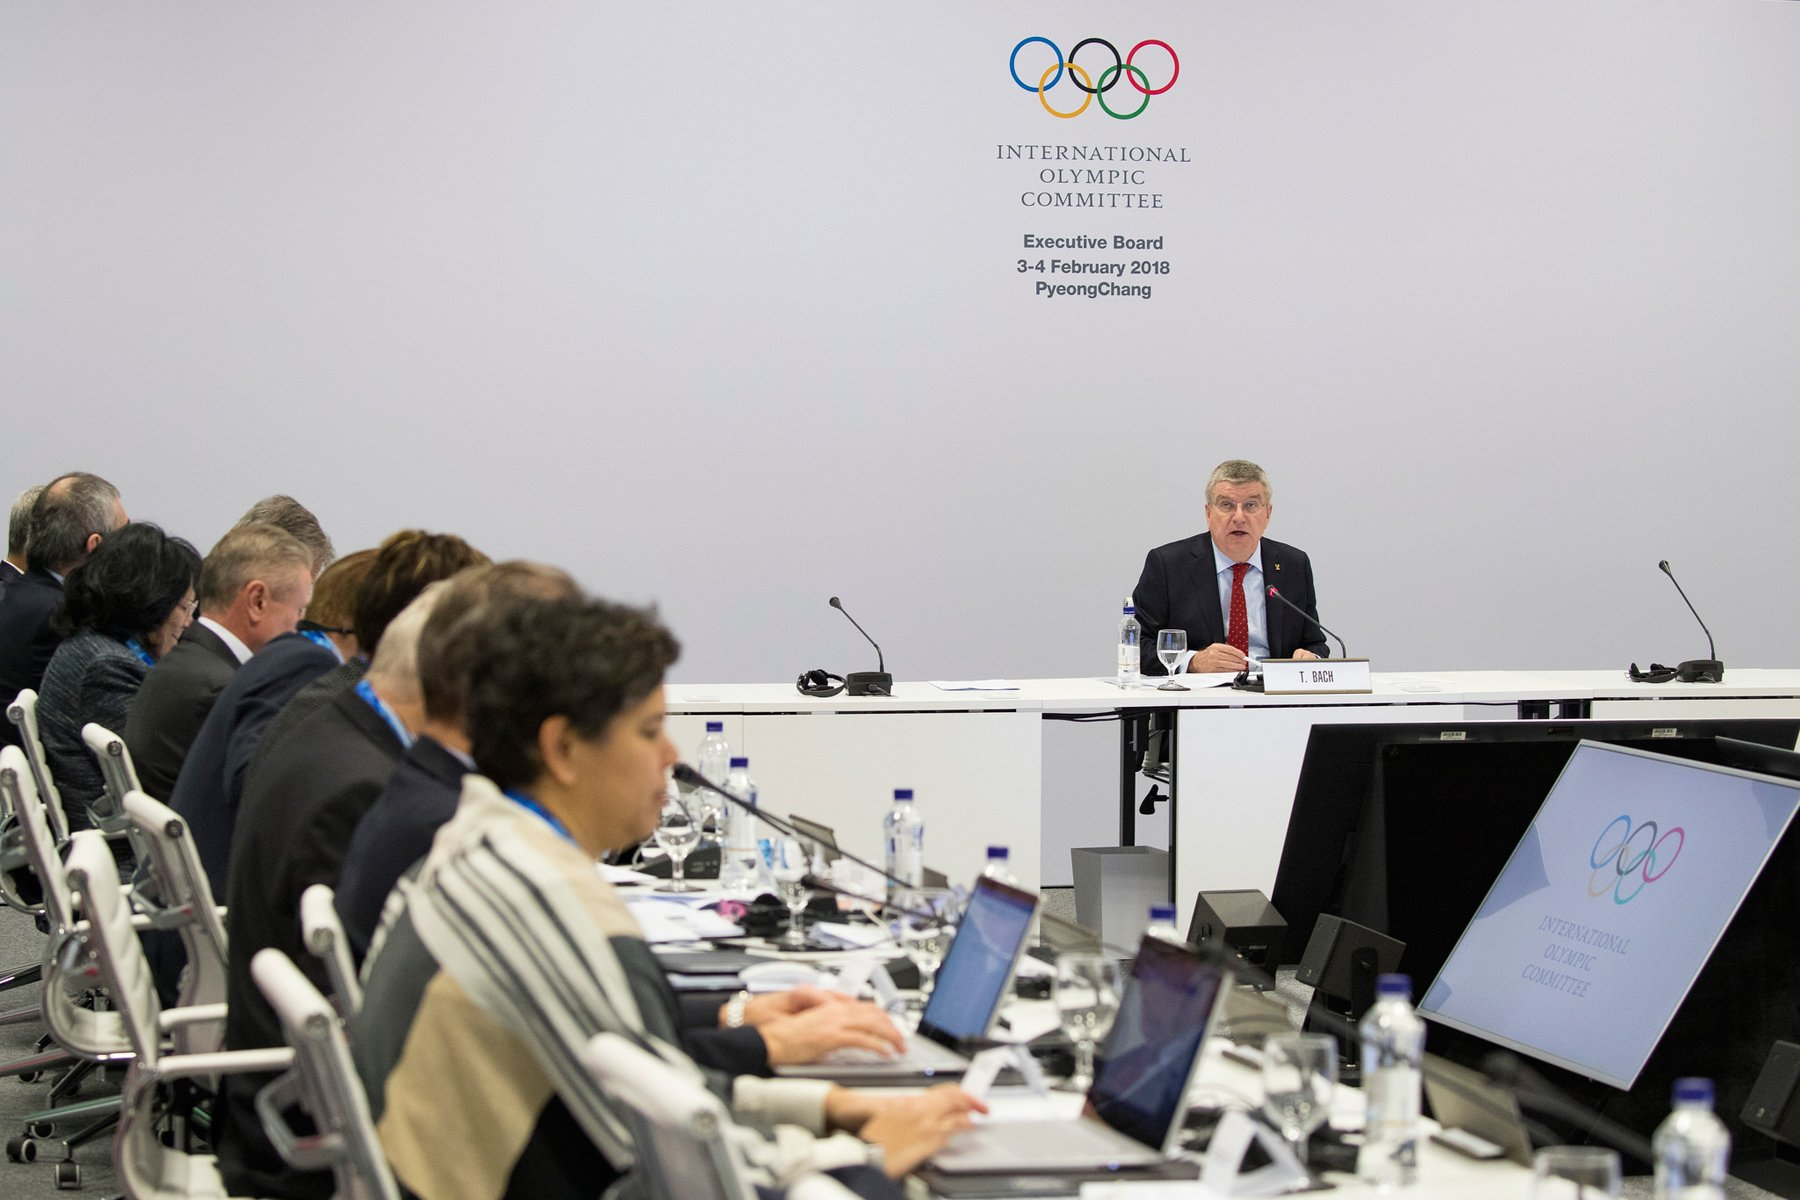 IOC President Thomas Bach heads the meeting of the Executive Board Meeting at the IBC in Pyeongchang / Photo by Greg Martin/IOC